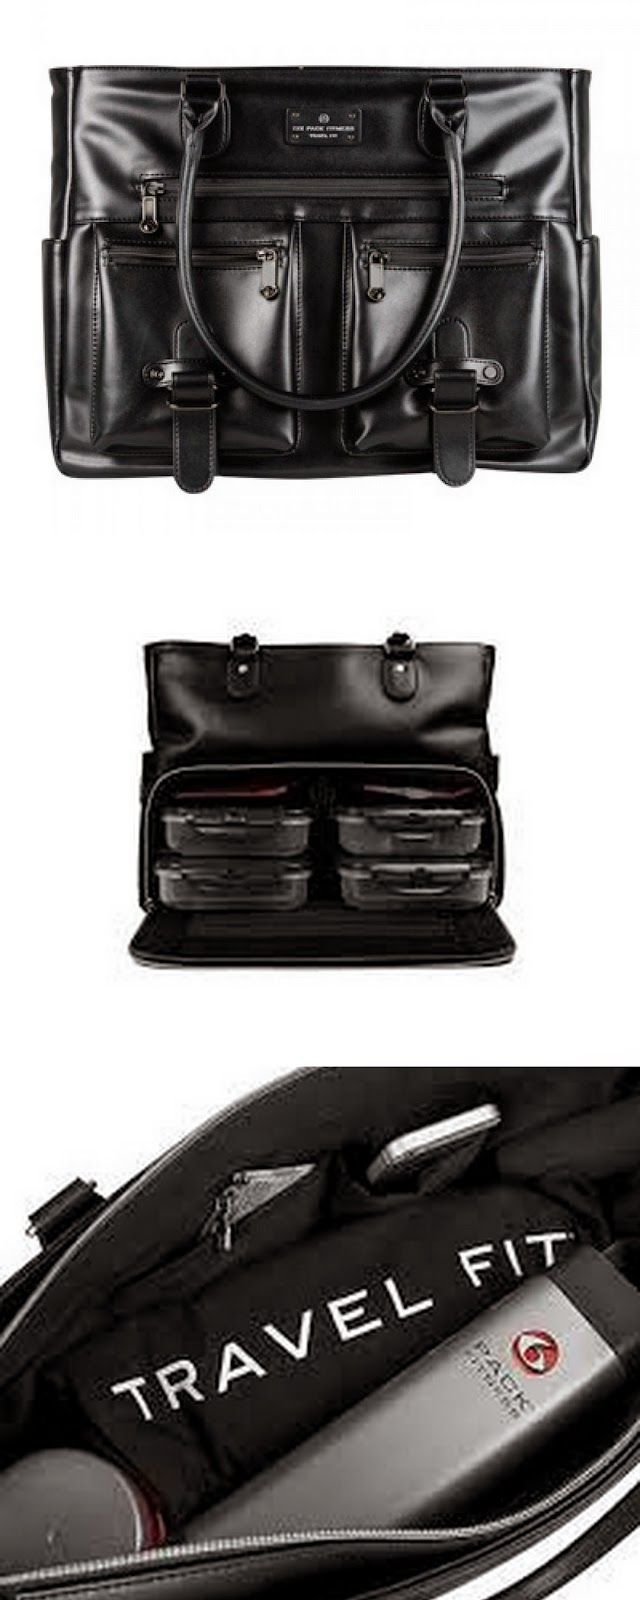 Meal prepping purse features a compartment to hide and store up to 4 meals. Comes with the containers and all!